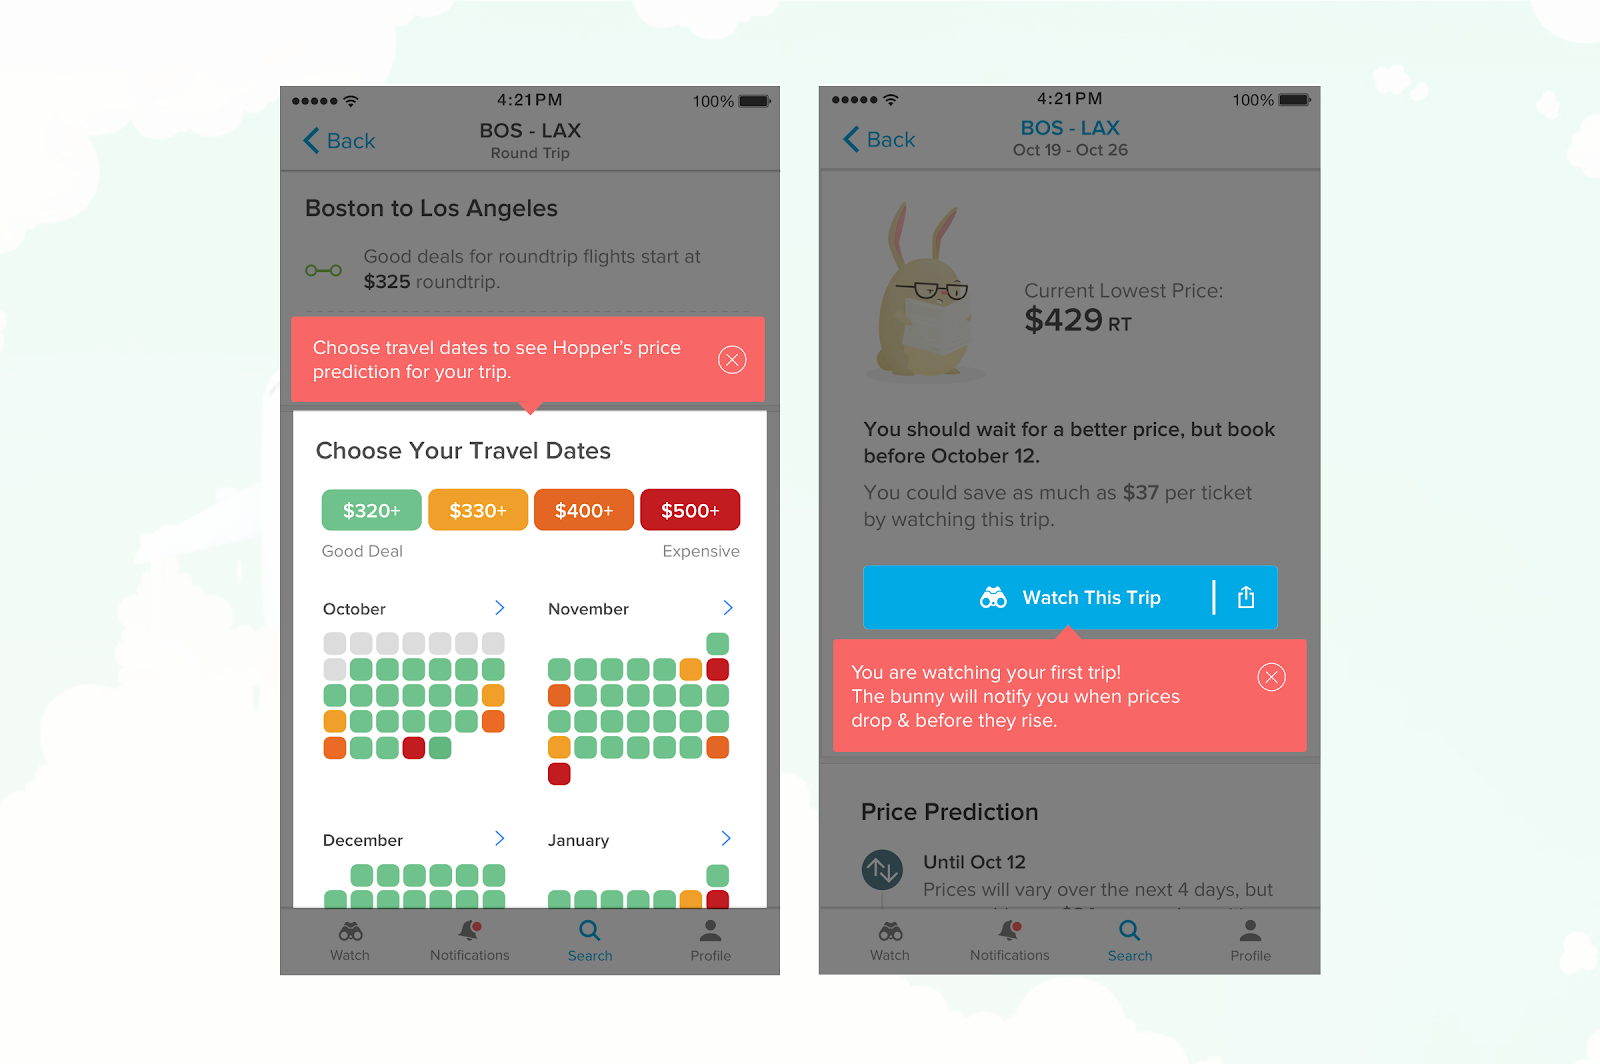 this is an example of mobile app tooltips from hopper. there are 2 screens side by side, showing how hopper app uses tooltips for user onboarding